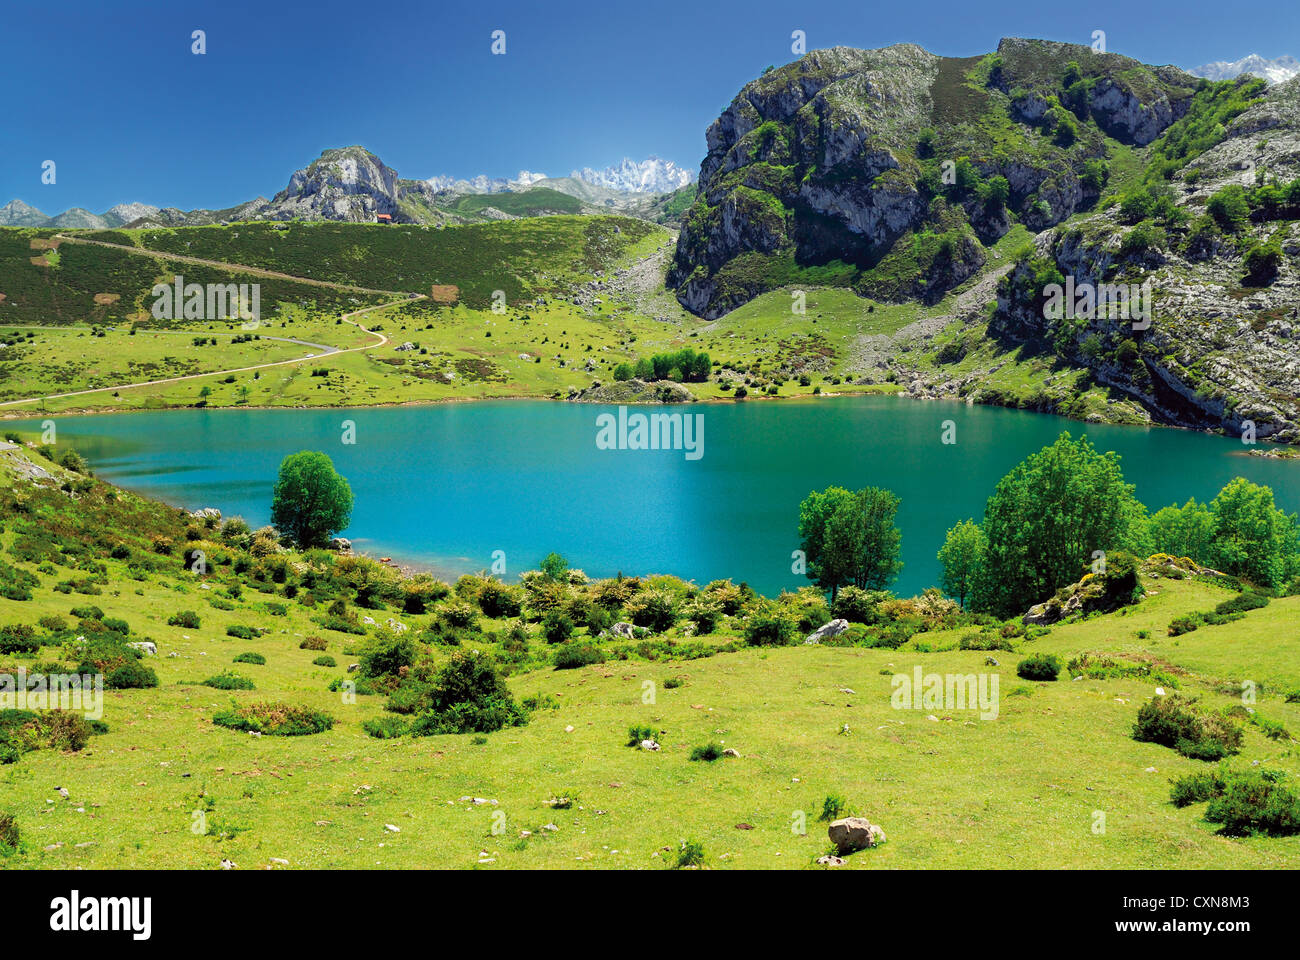 Spain, Asturias: Mountain panorama at Lake Enol in the National Park Picos de Europa - Stock Image